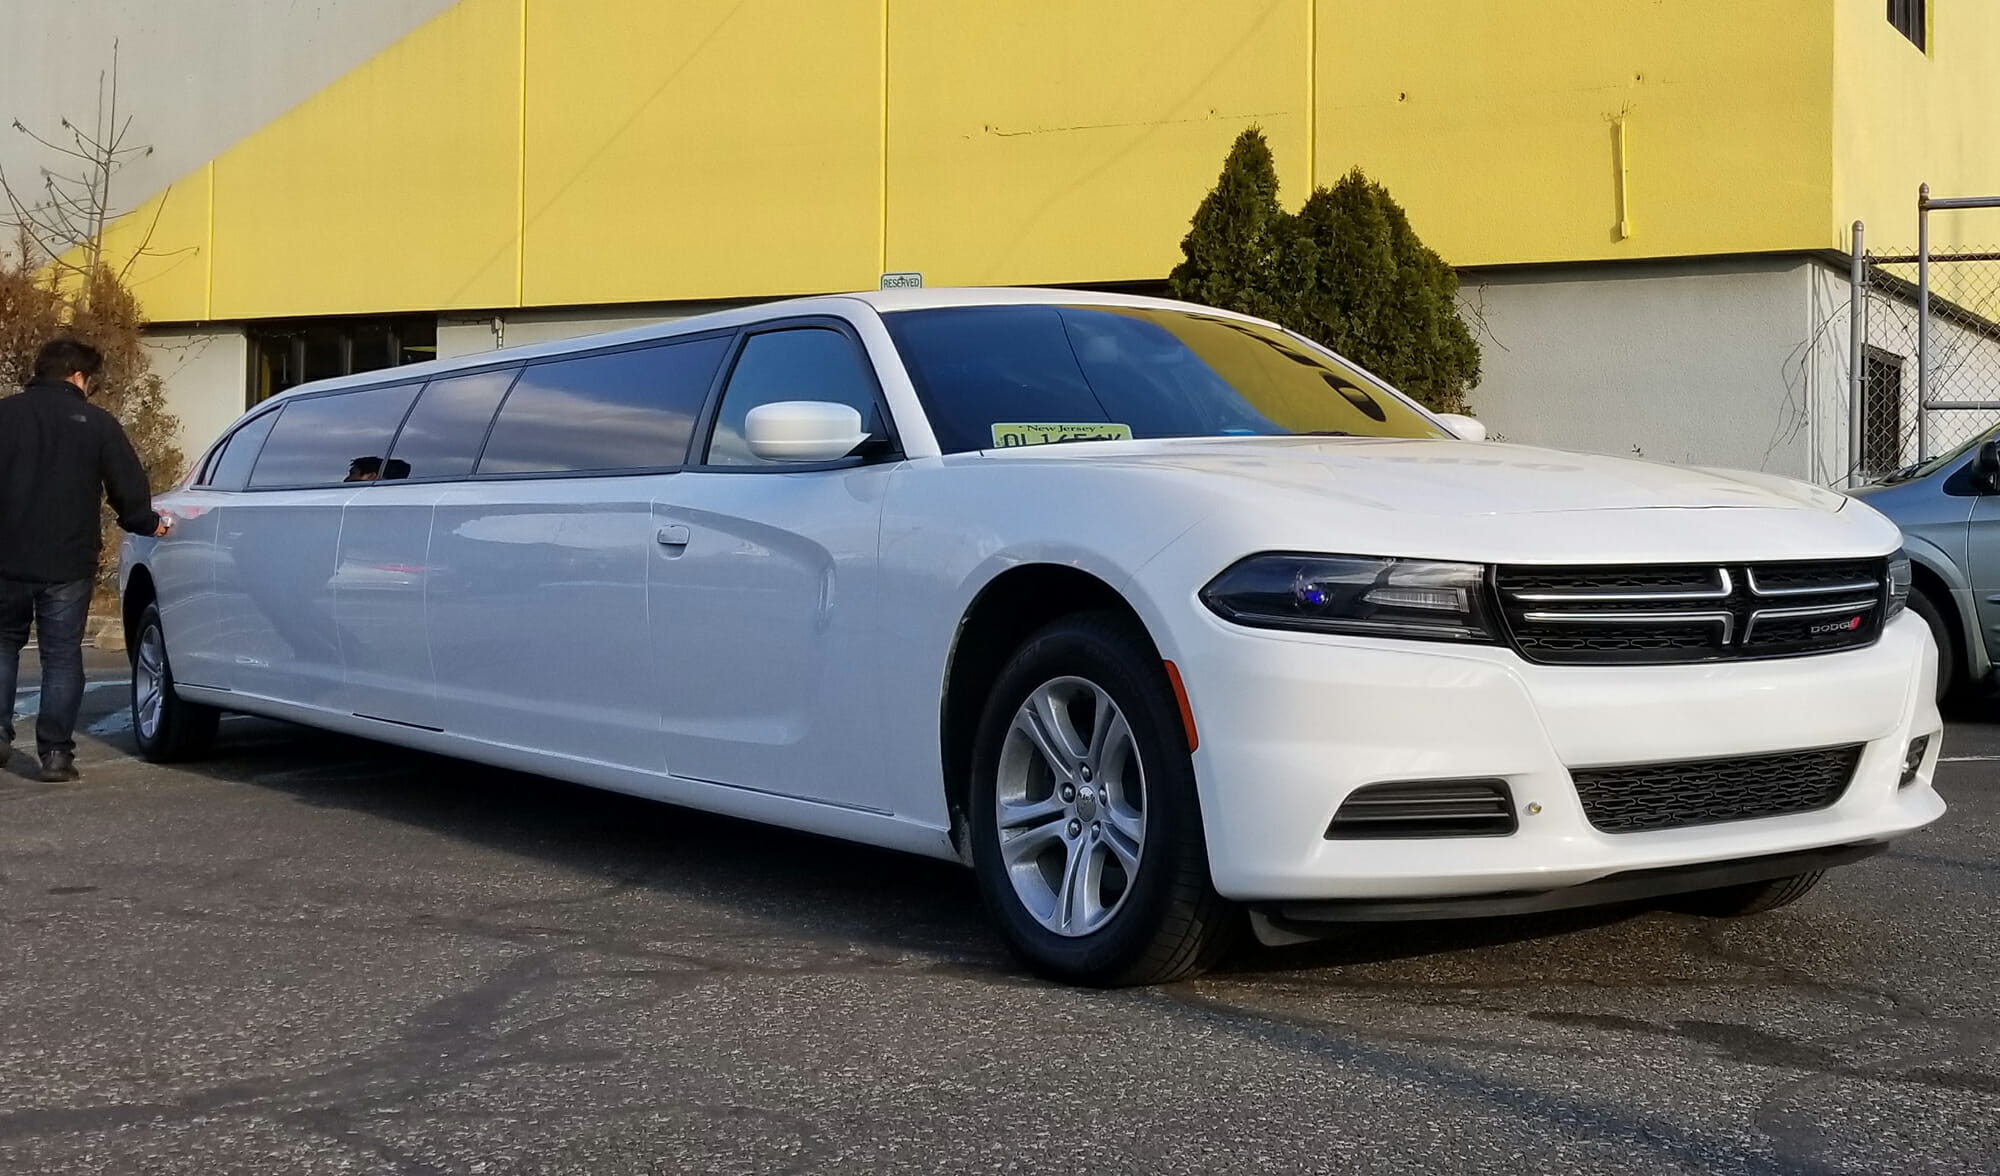 2018 Dodge Charger RPD Limo